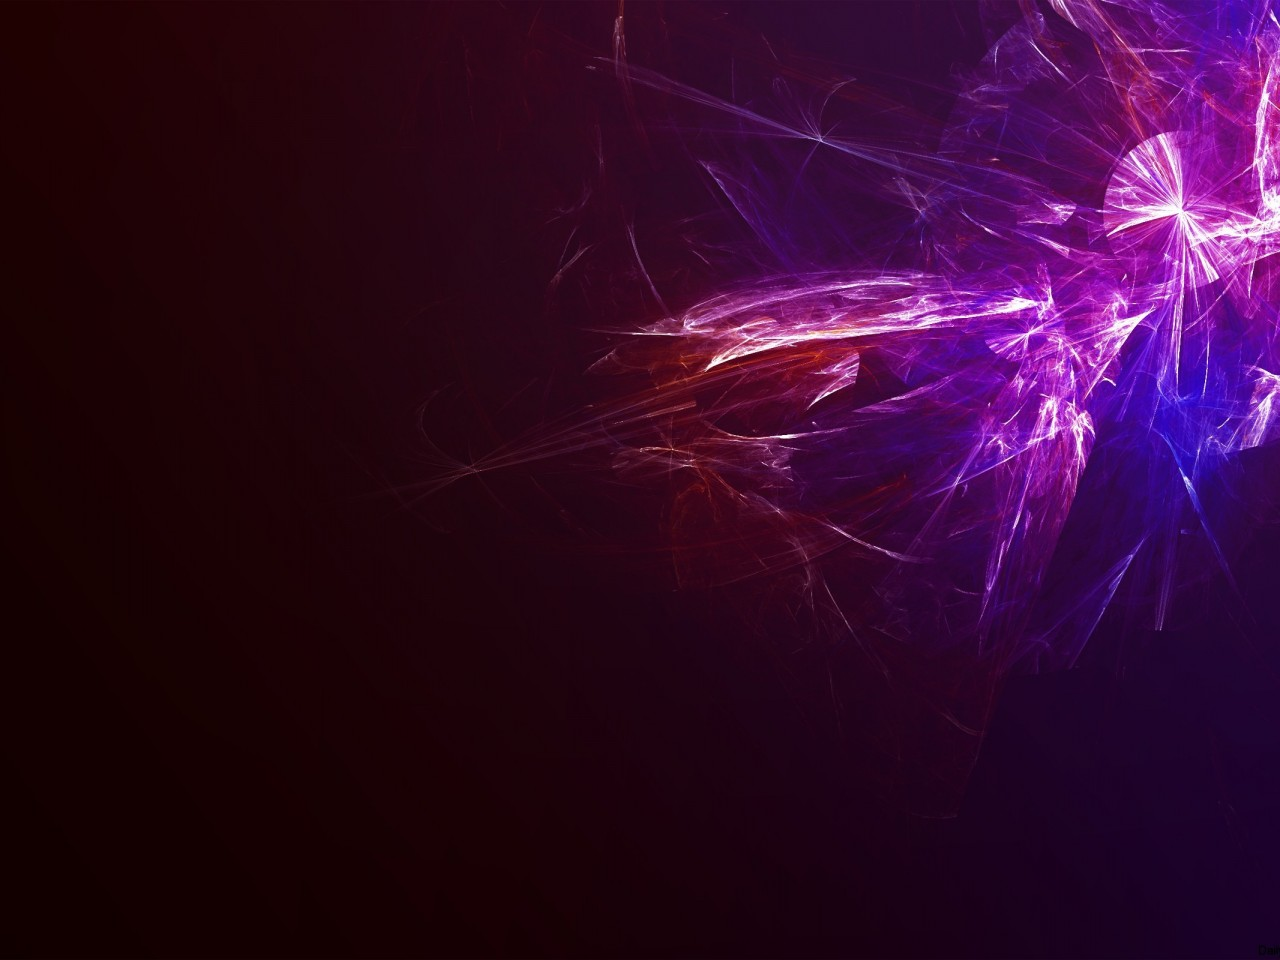 More Dynamic Wallpapers Iphone X Cellophane Purple Hd Wallpapers